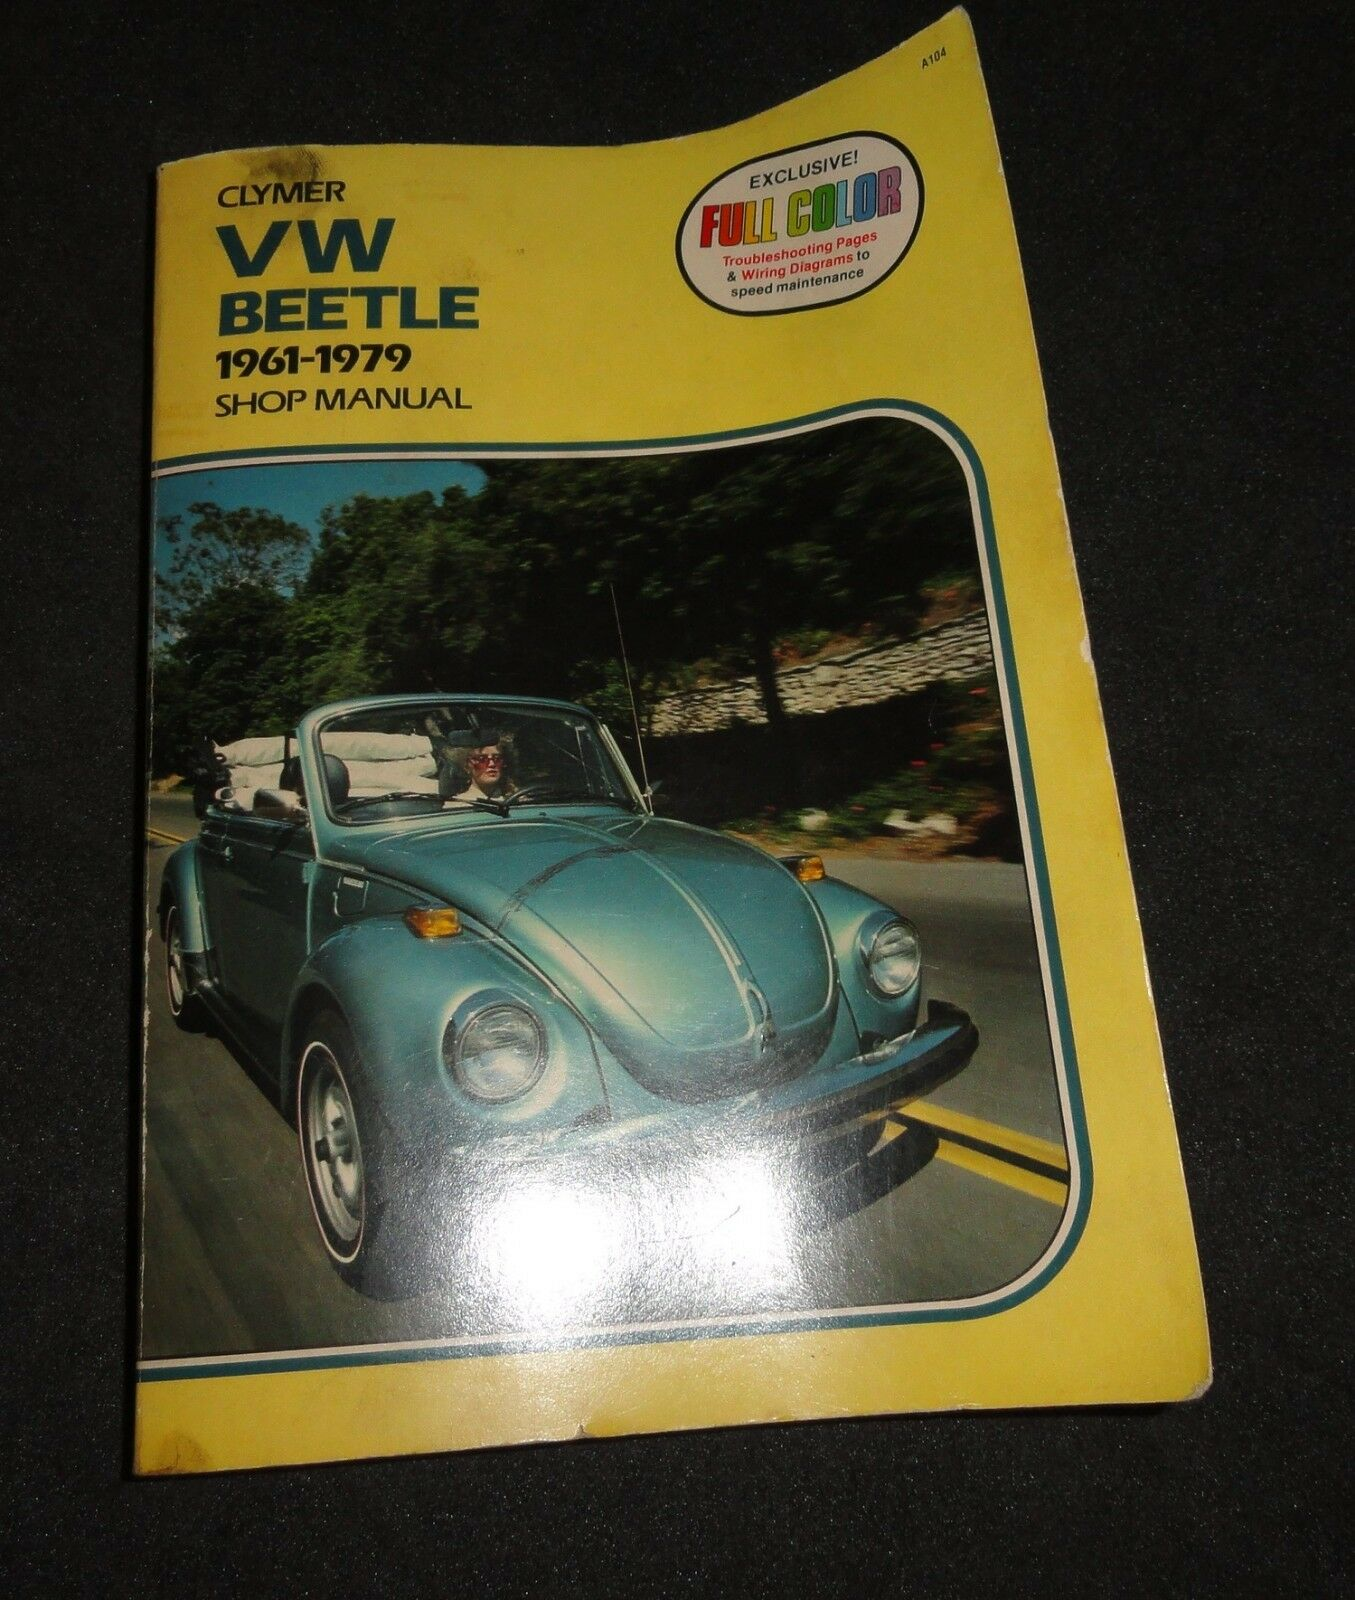 1979 Clymer Vw Beetle Volkswagen 1961 Shop Service Manual Ebay And Karmann Ghia Engine Electrical System Troubleshooting Norton Secured Powered By Verisign